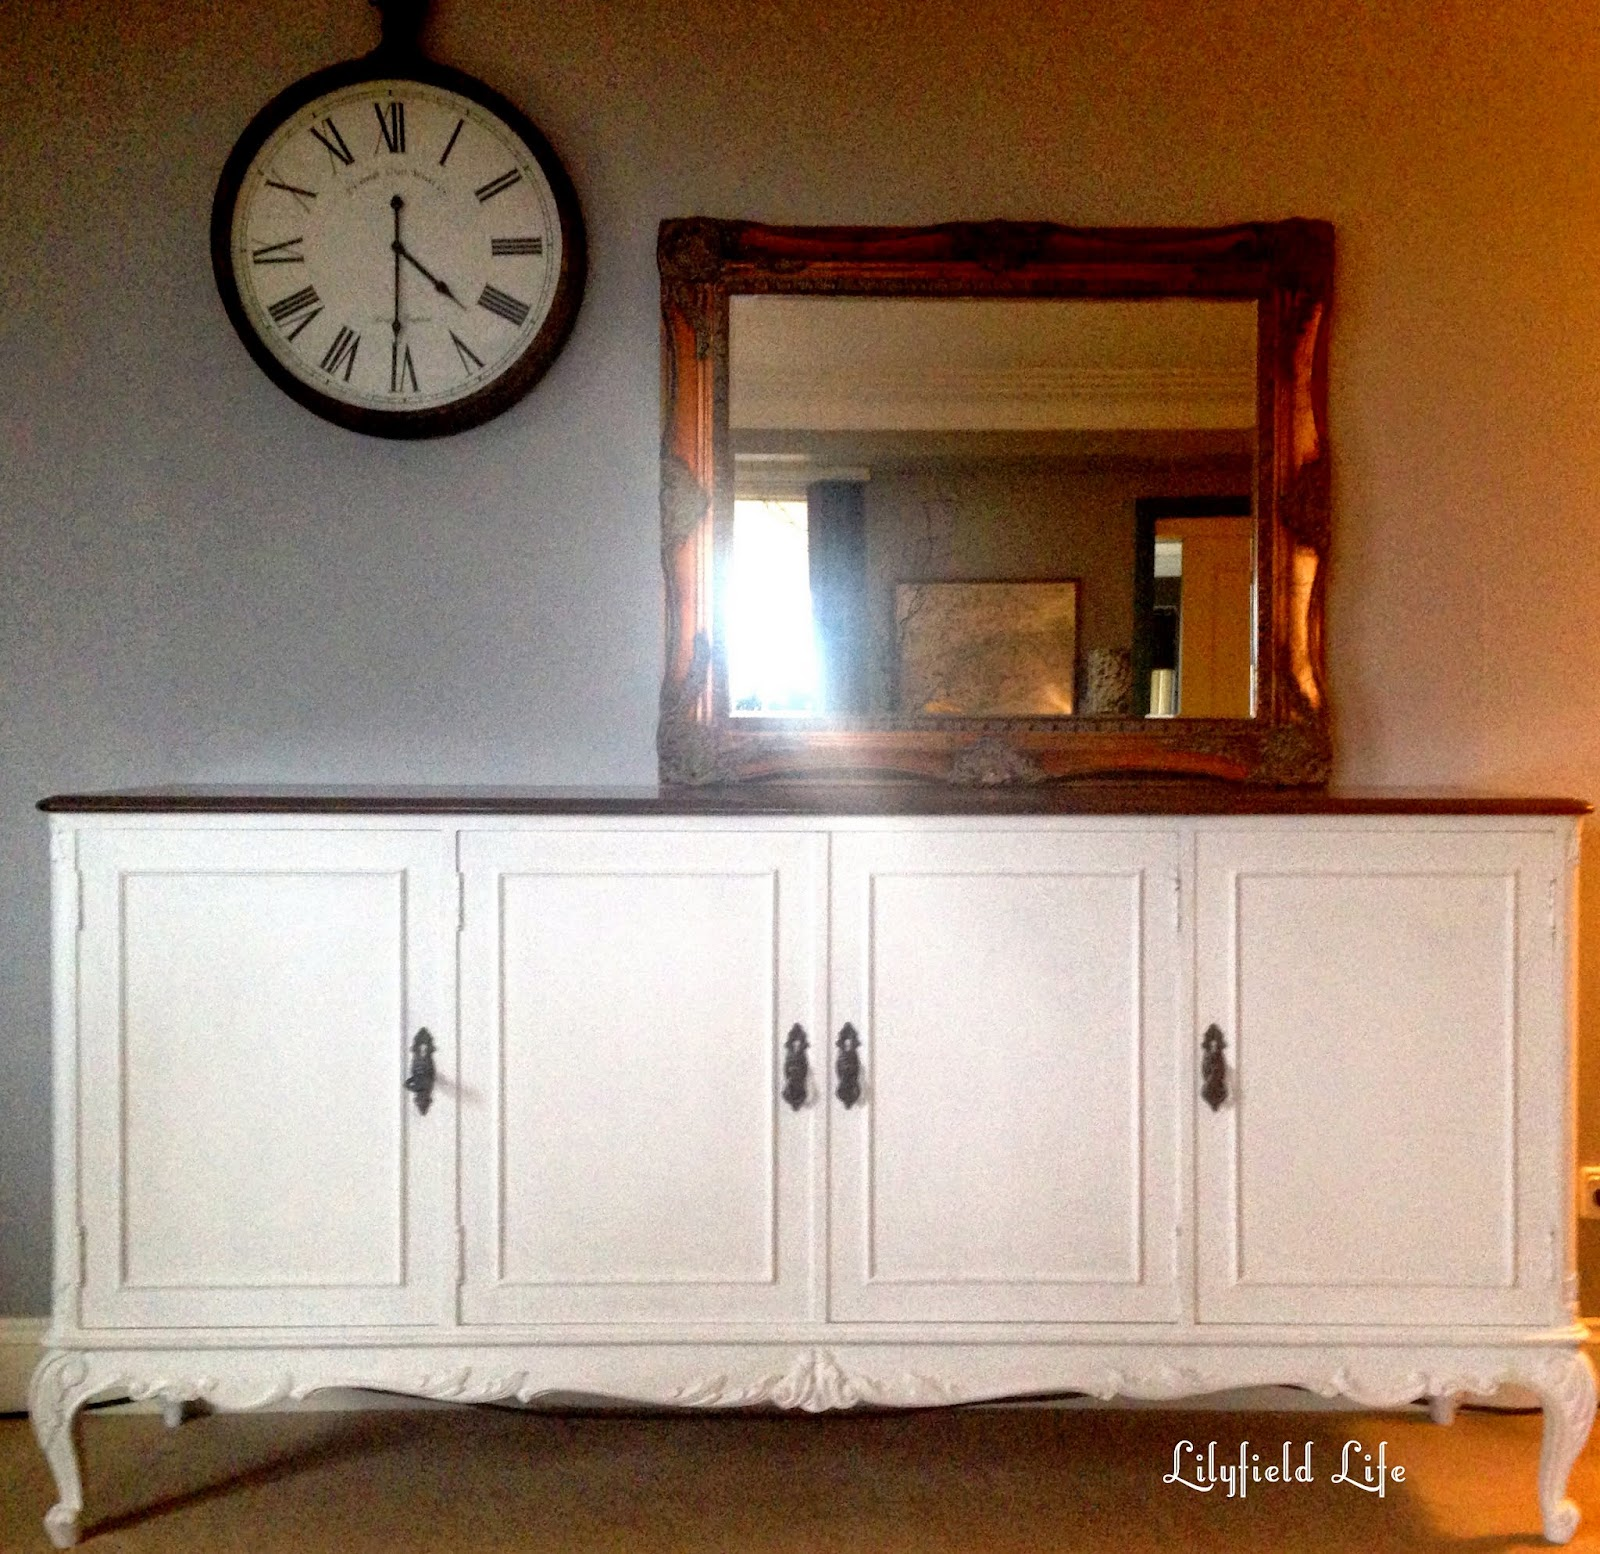 white French Provincial sideboard Lilyfield Life